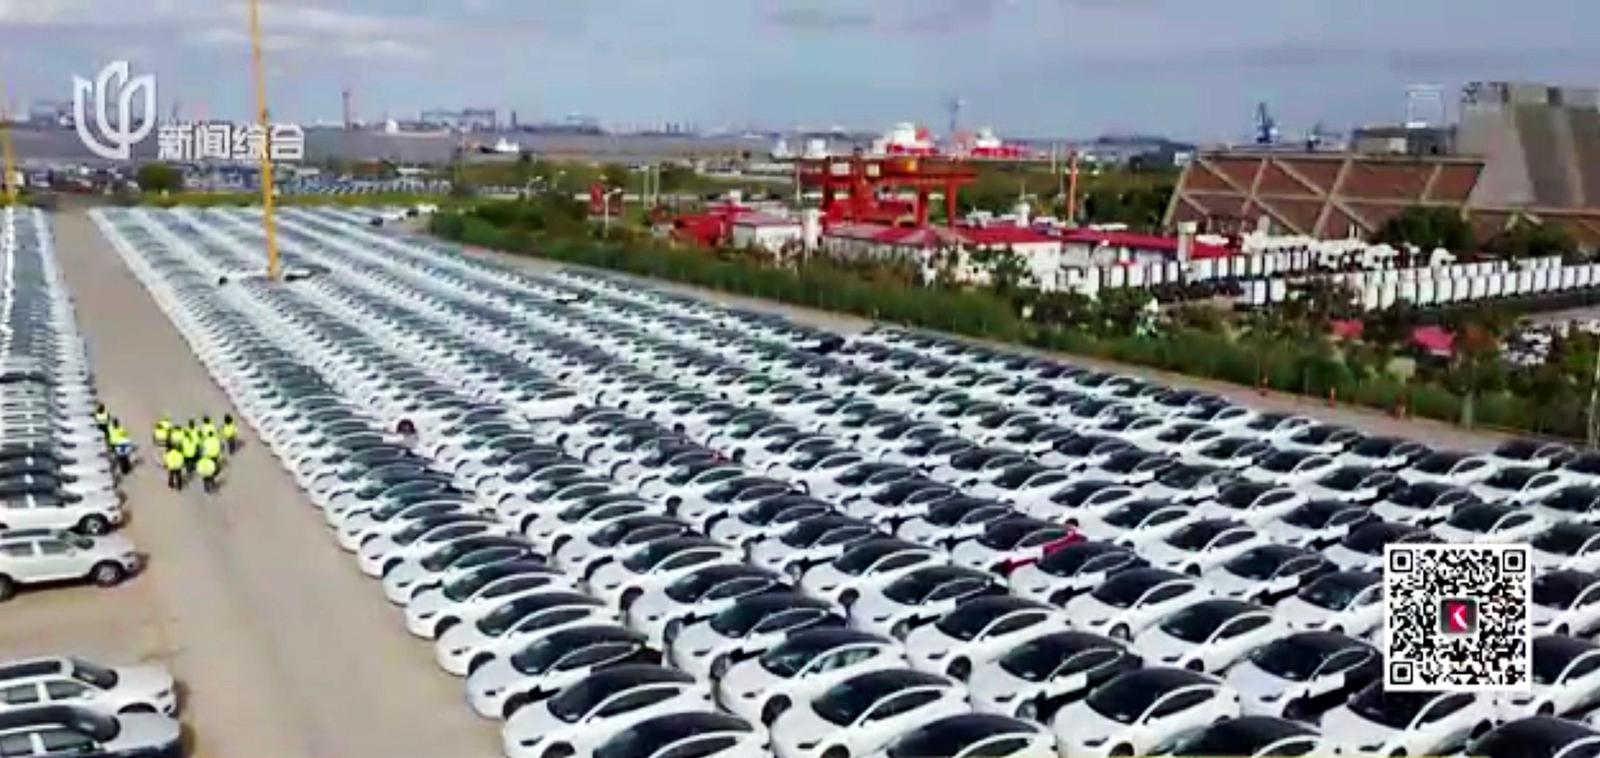 Tesla Giga Shanghai Has Thousands of Model 3 Ready to Export to 10+ of European Countries Next Week